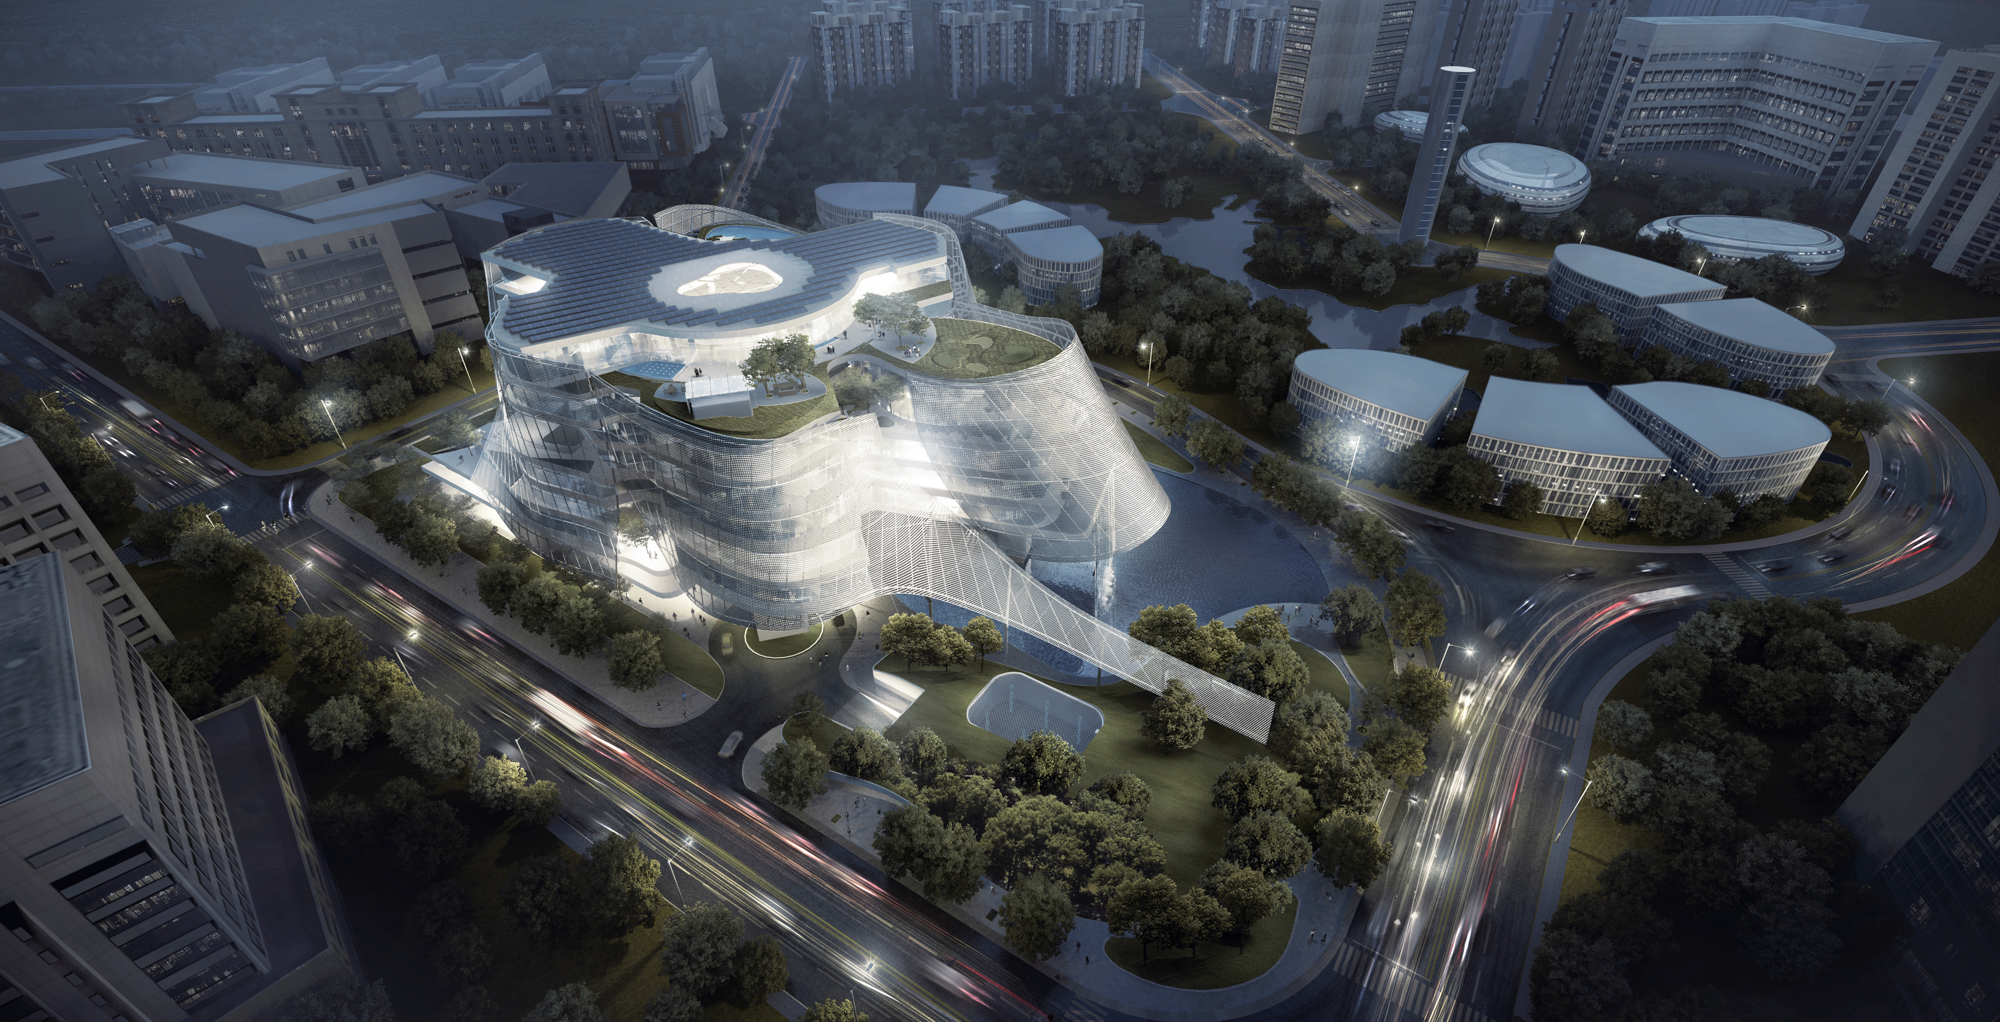 01_MAD_Xinhee Design Center_Rendering